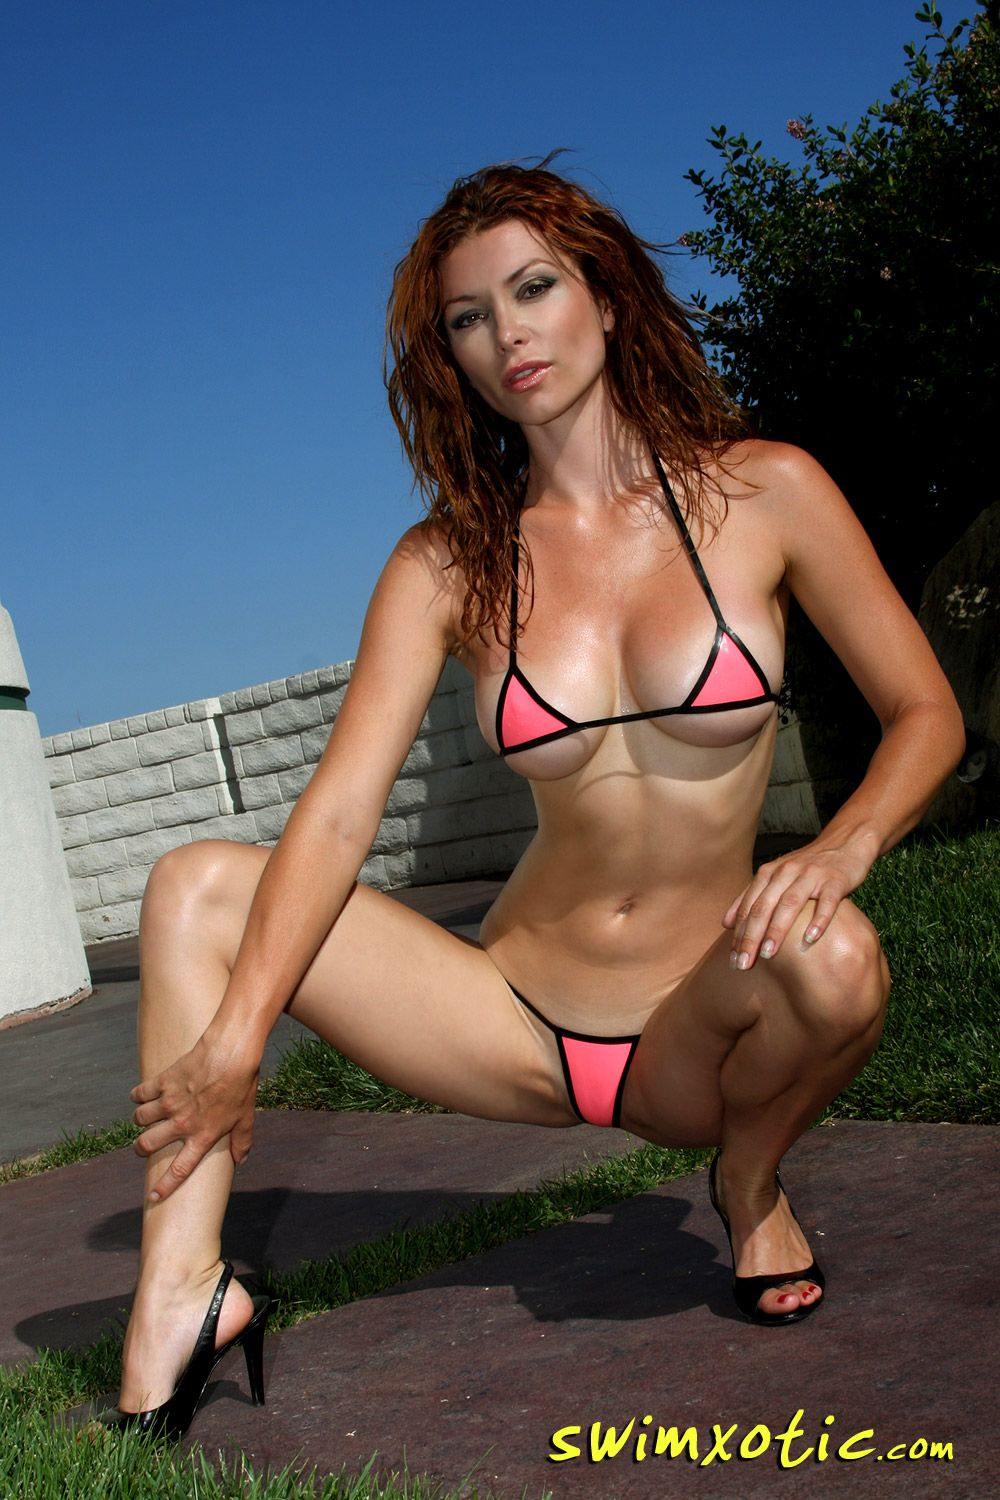 Who is heather vandeven